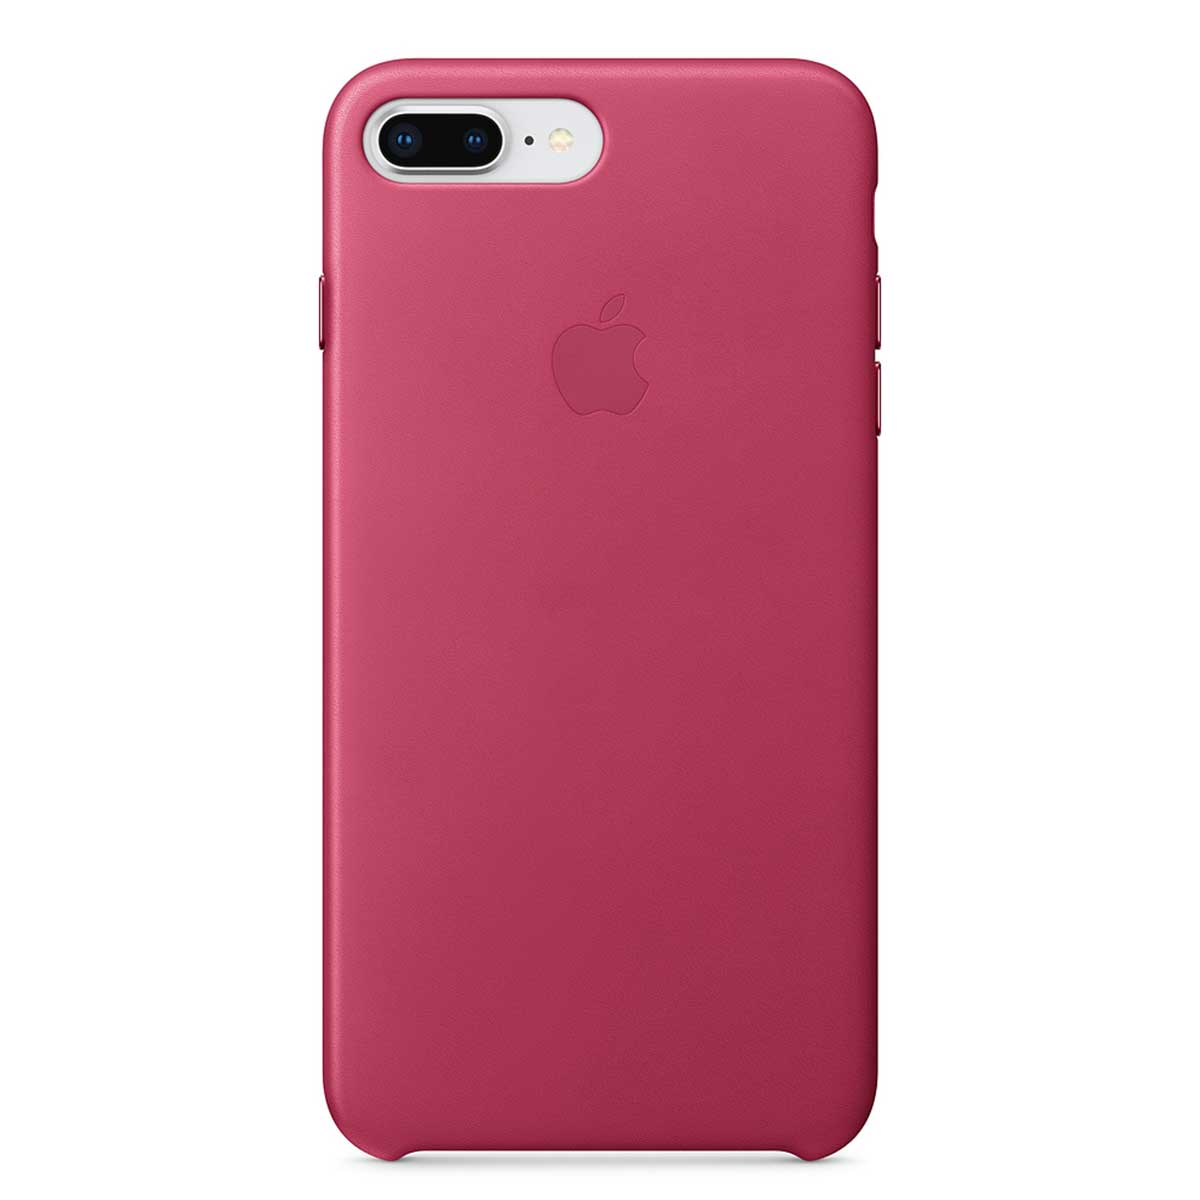 iPhone 8 Plus Leather Case Pink Fuchsia